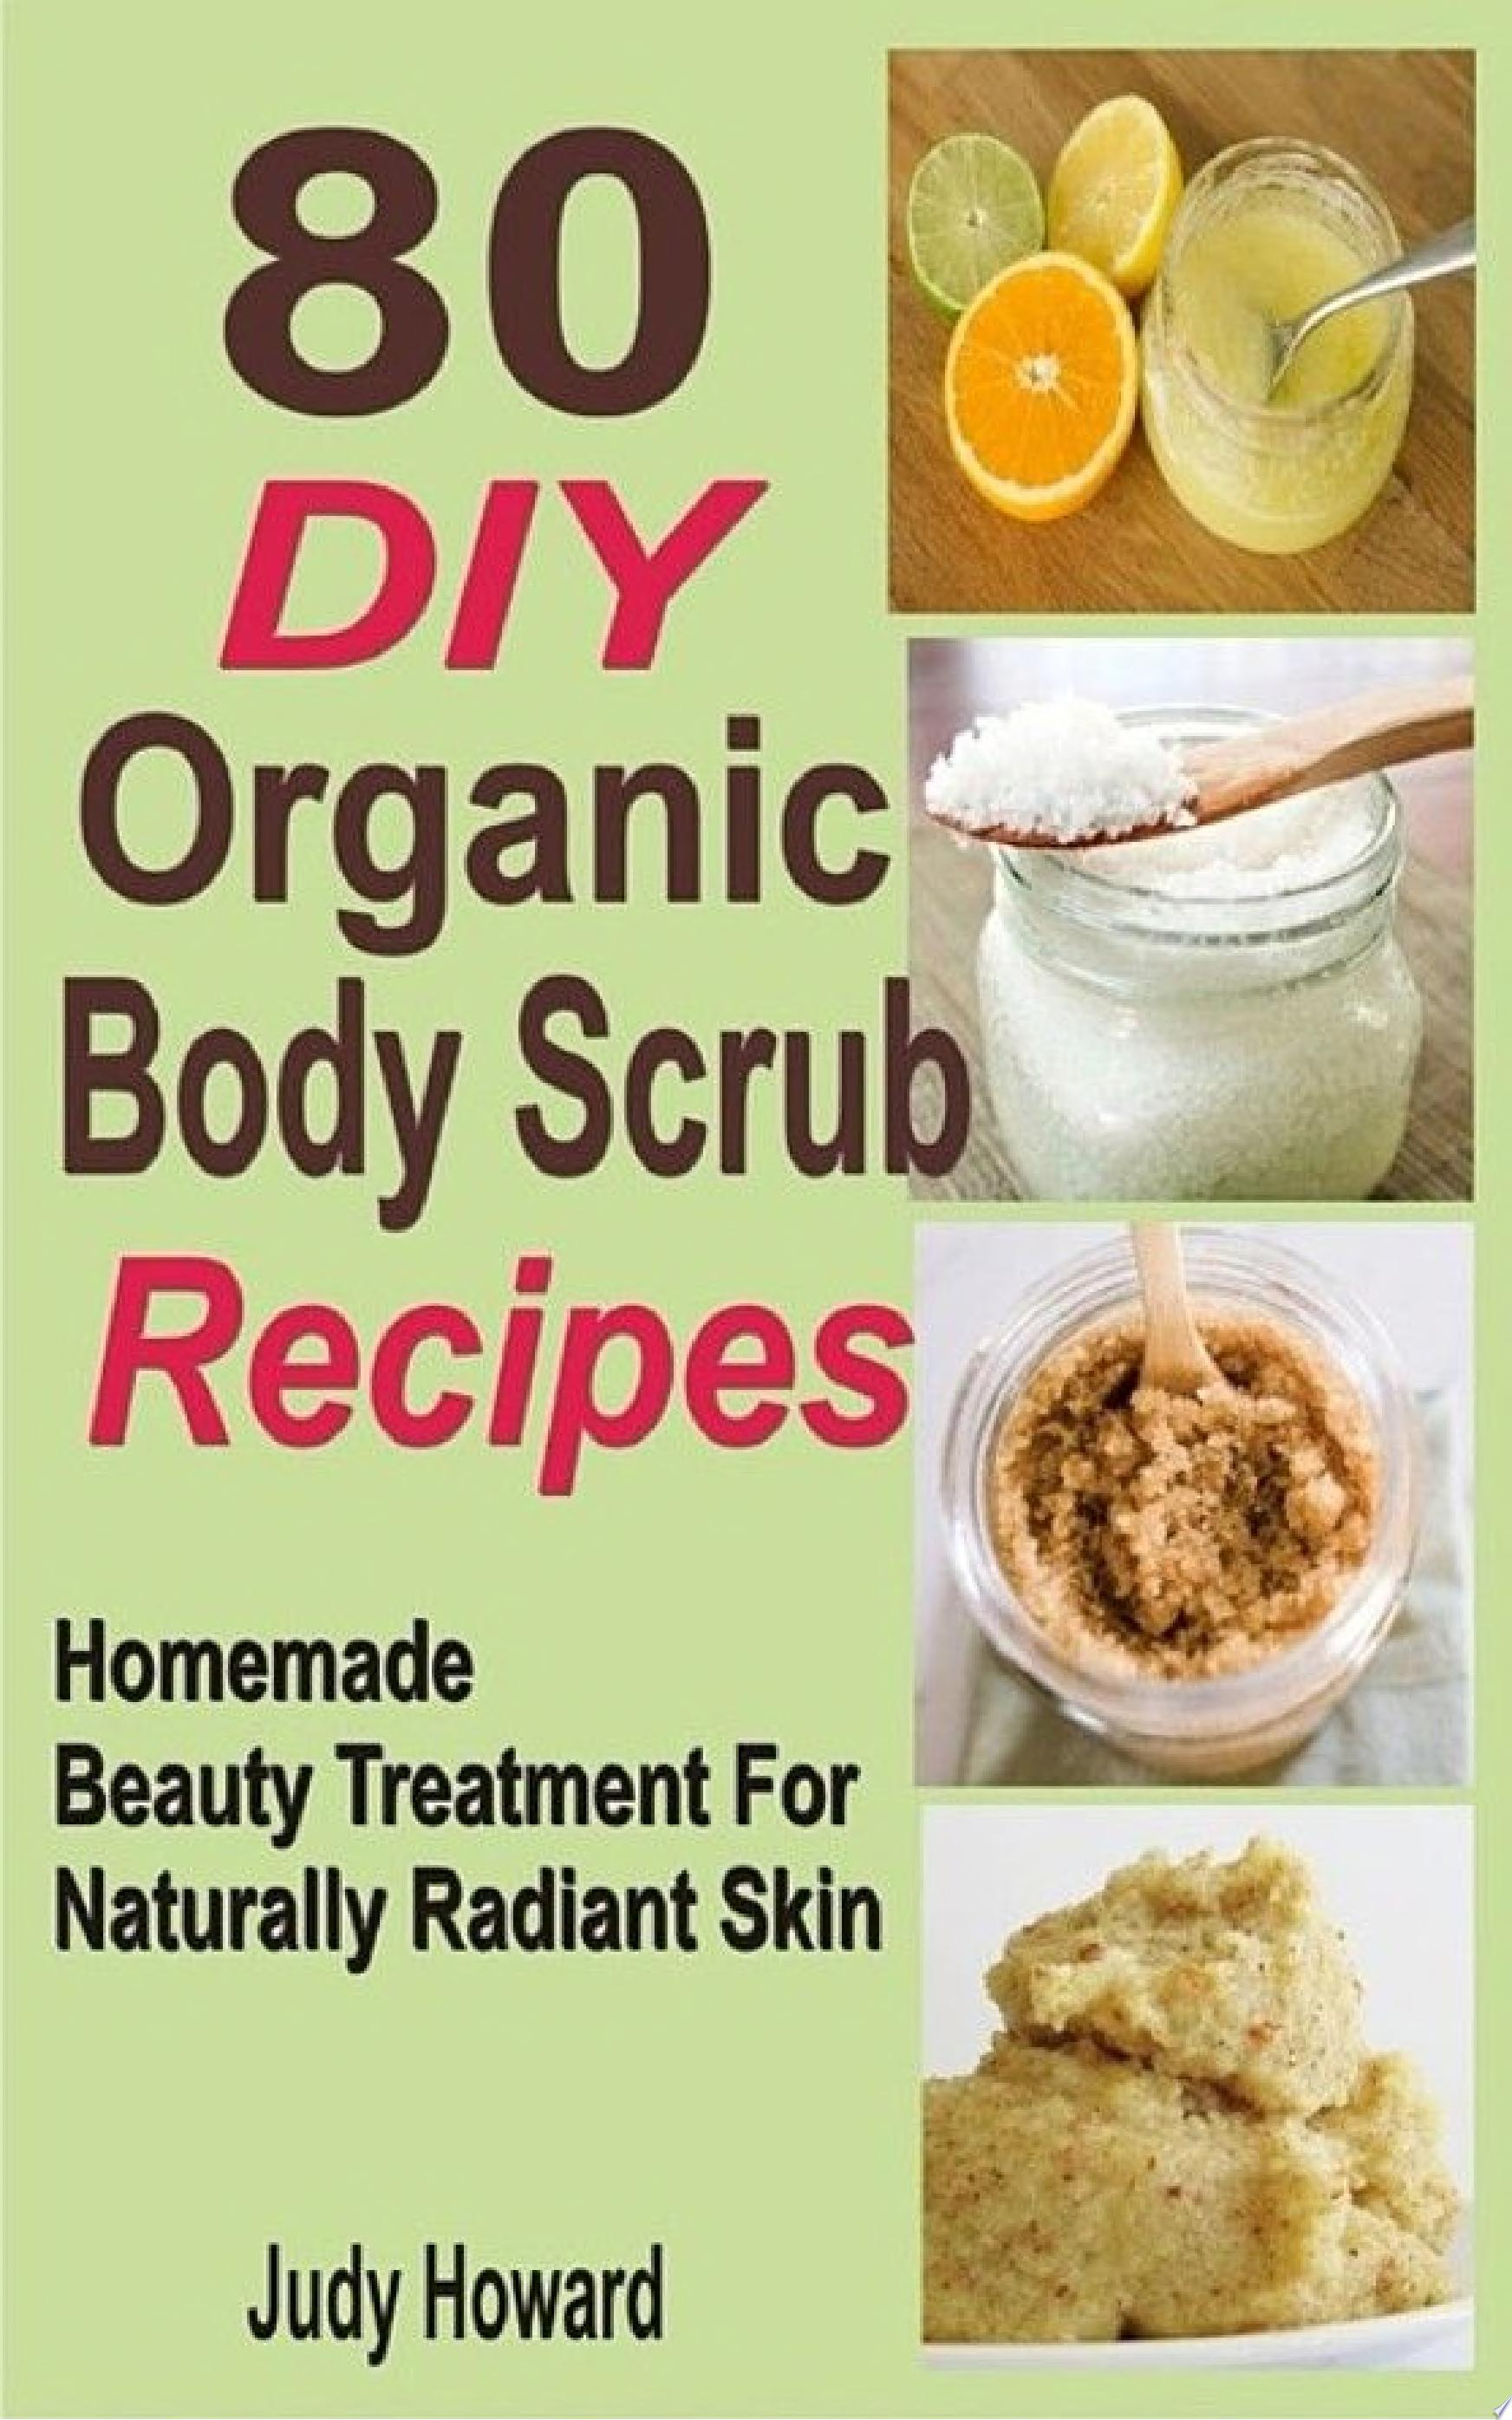 80 DIY Organic Body Scrub Recipes